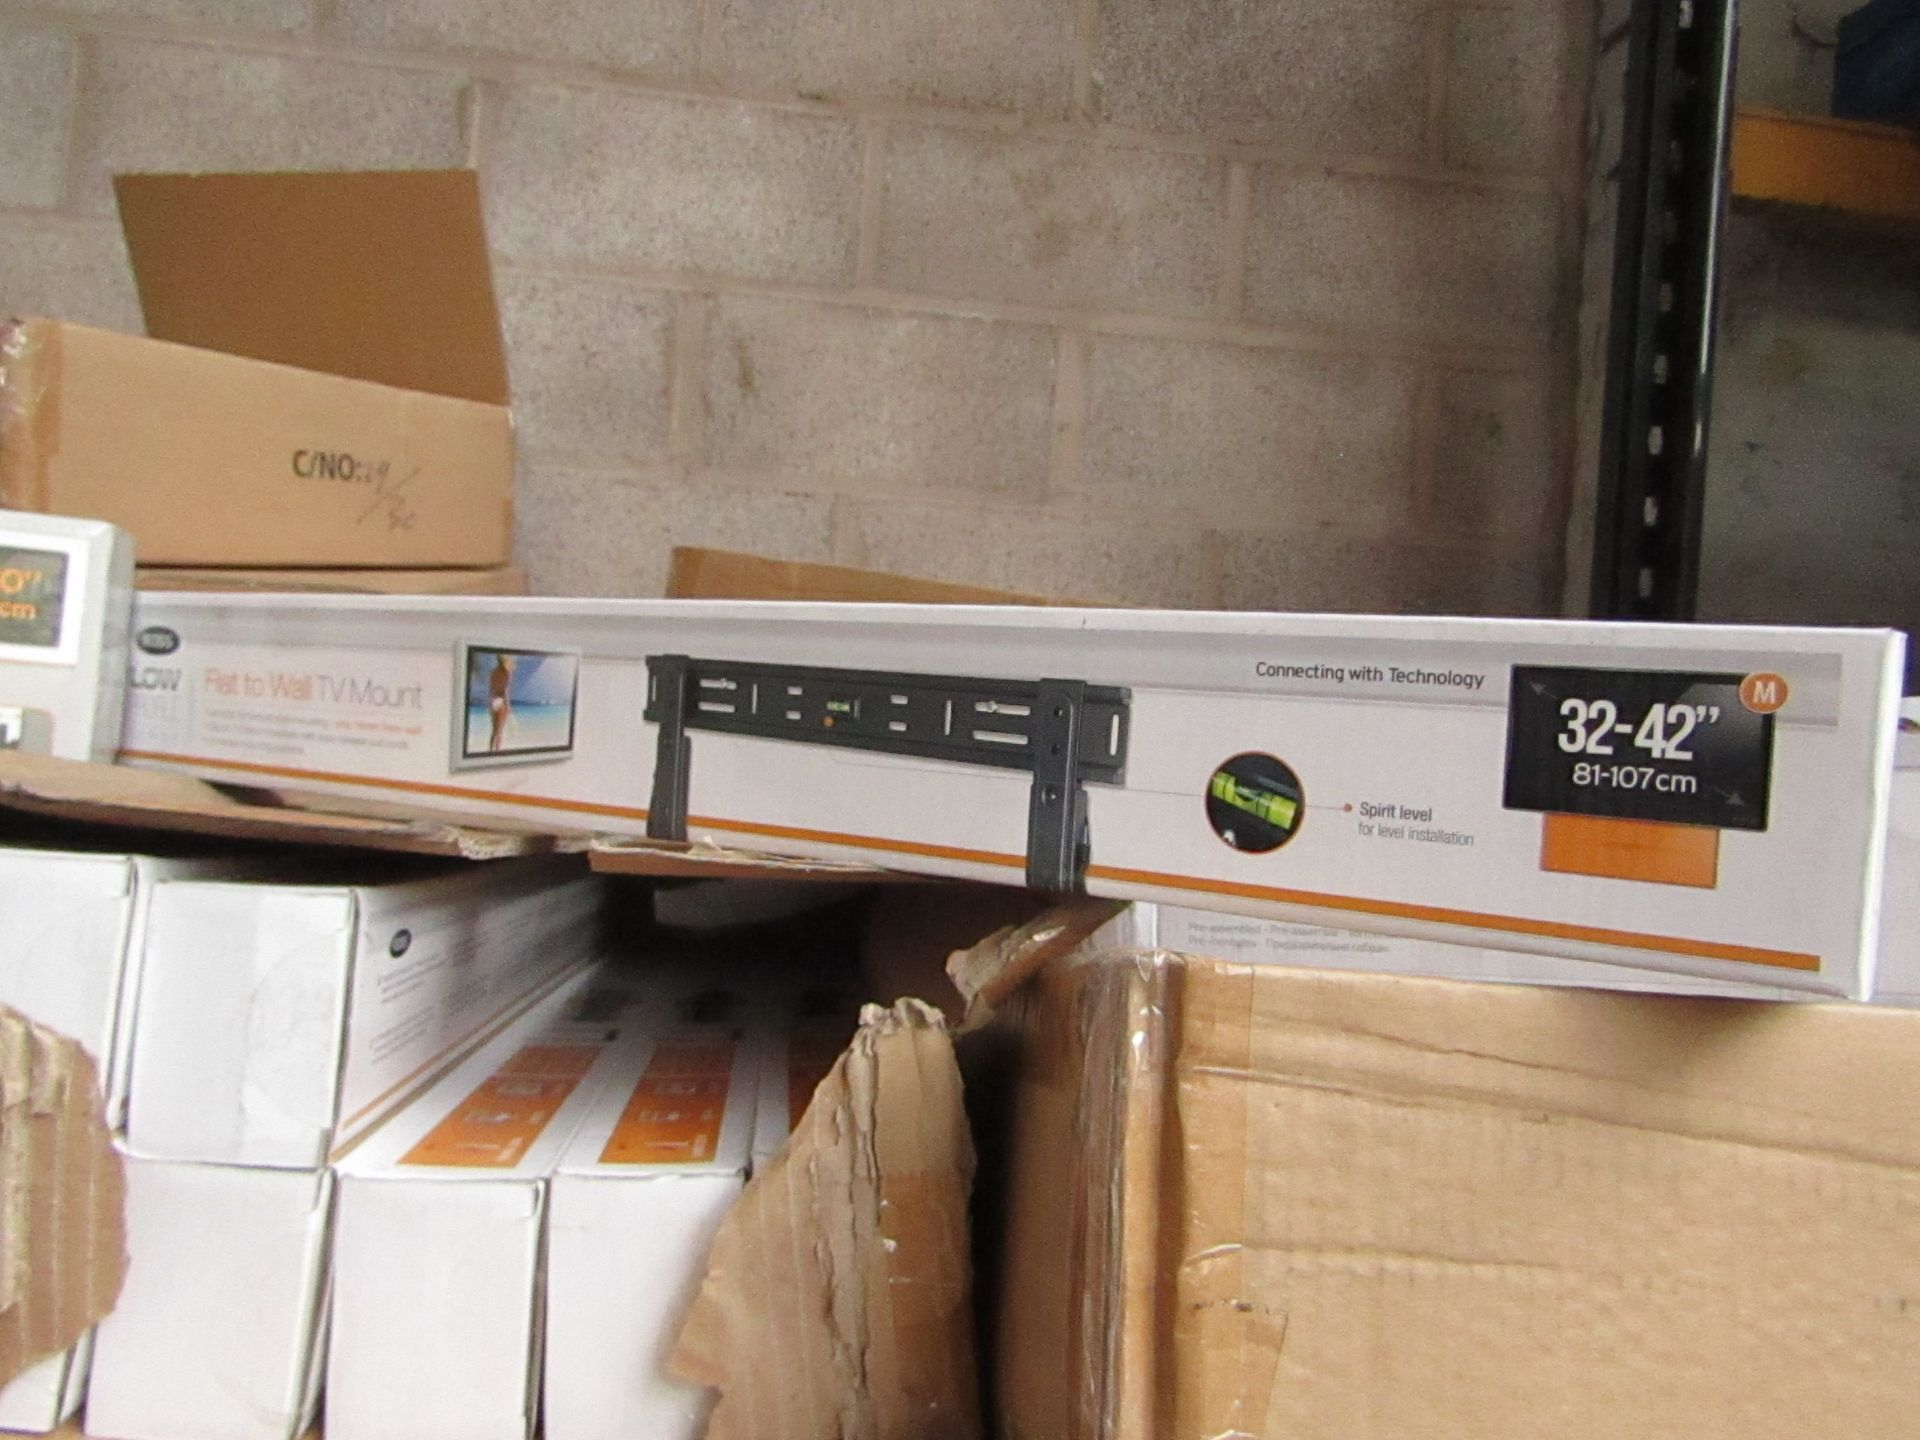 "Lot 190 - Ross - Flat To Wall TV Mount 32 - 42"" - New & Boxed."